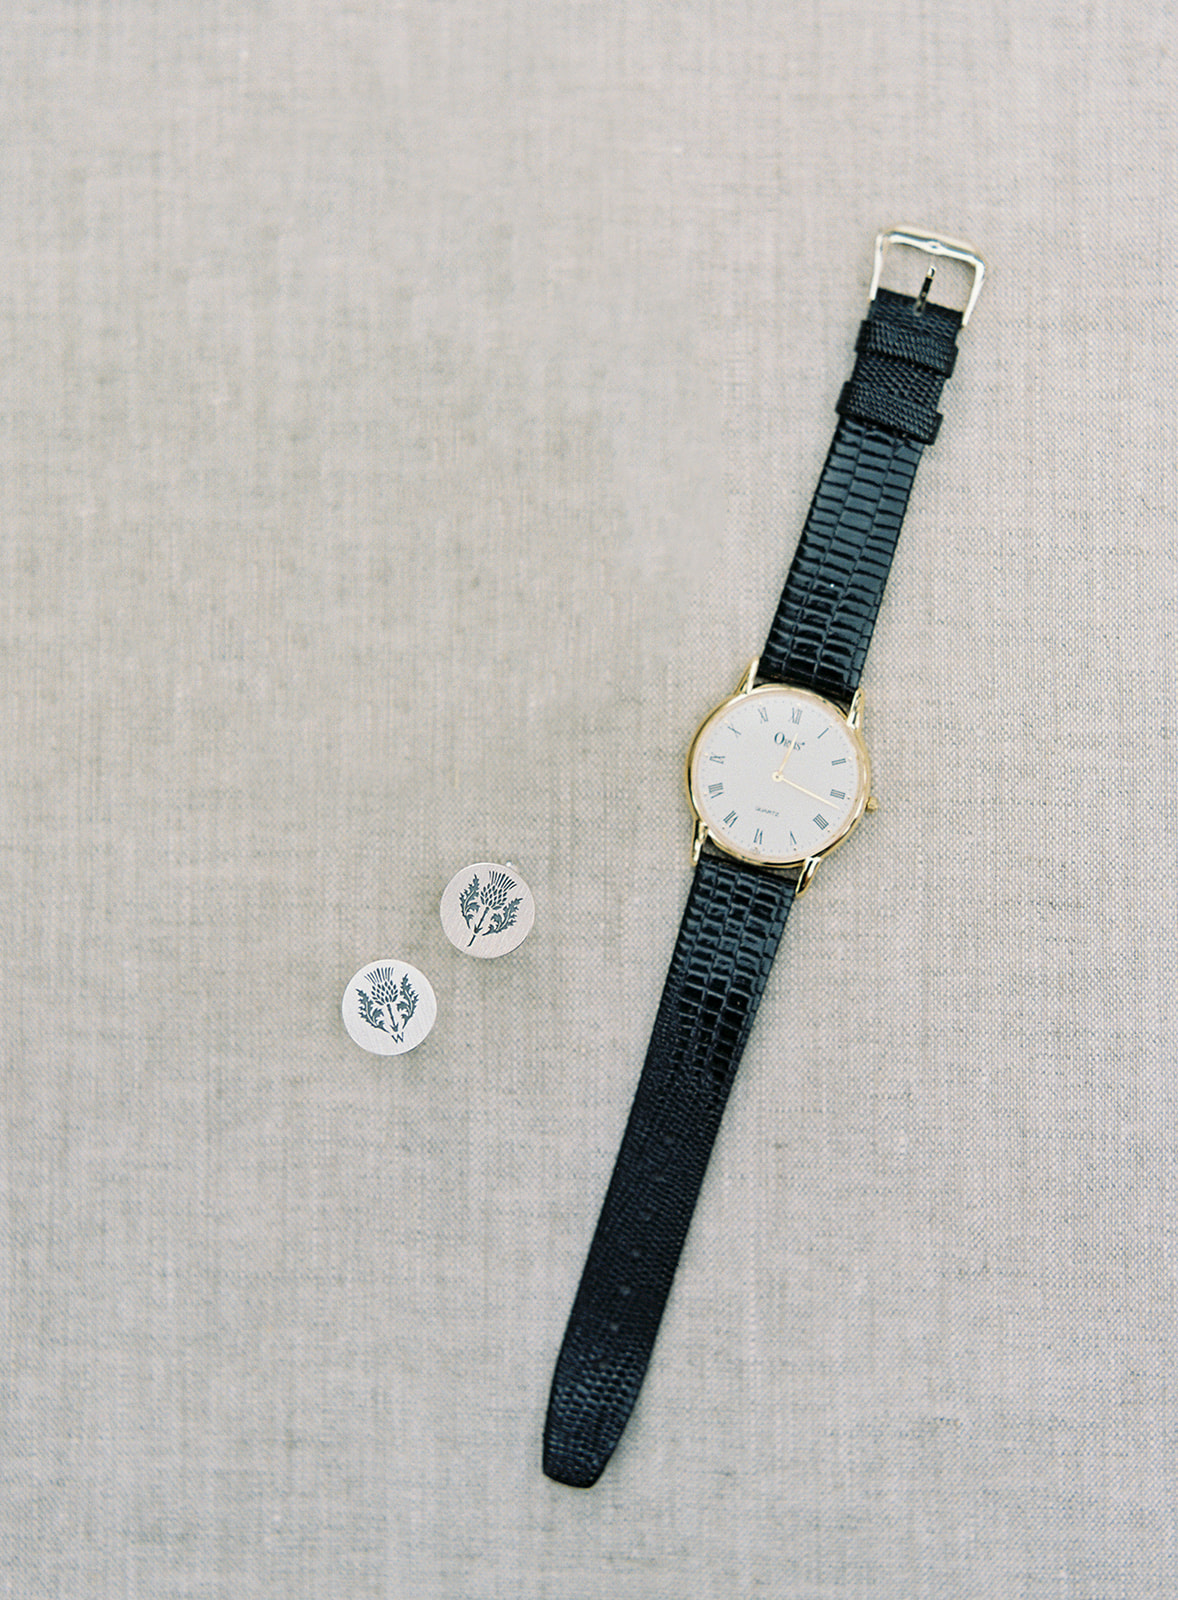 black leather band with gold accent wrist watch